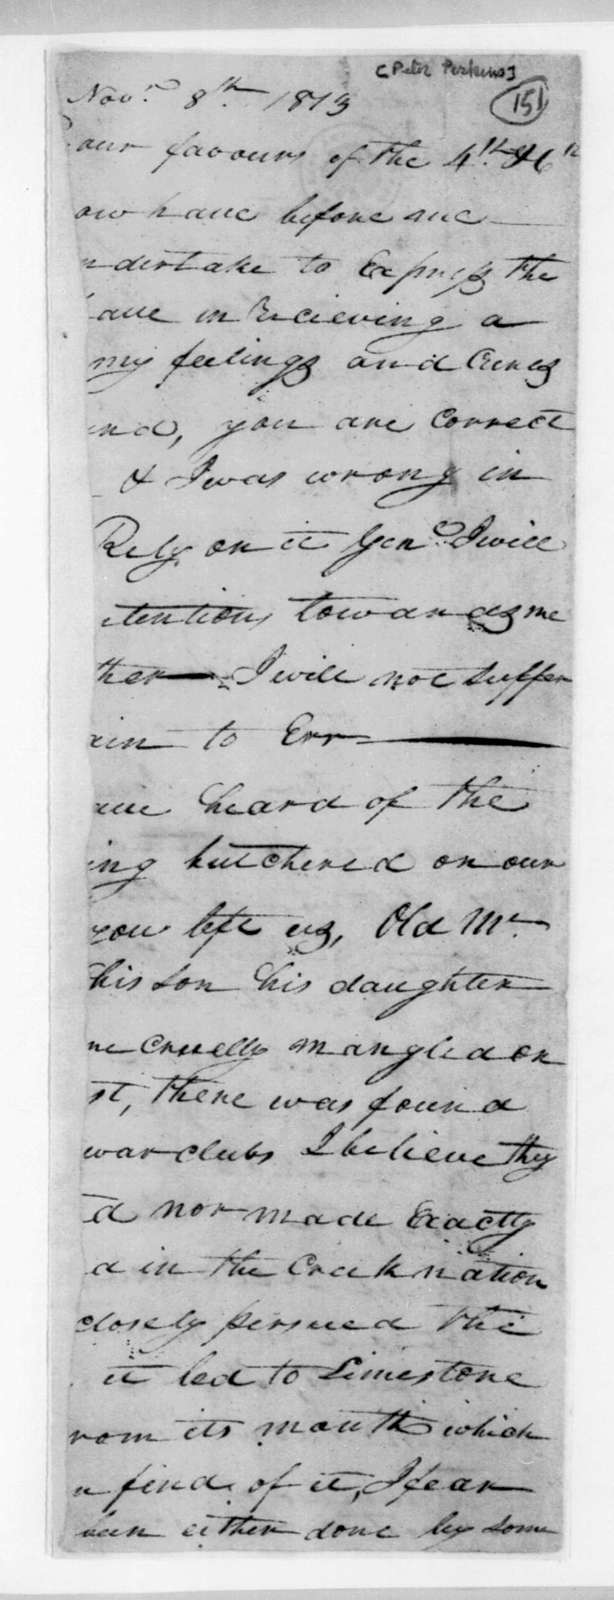 Peter Perkins to Unknown, November 8, 1813